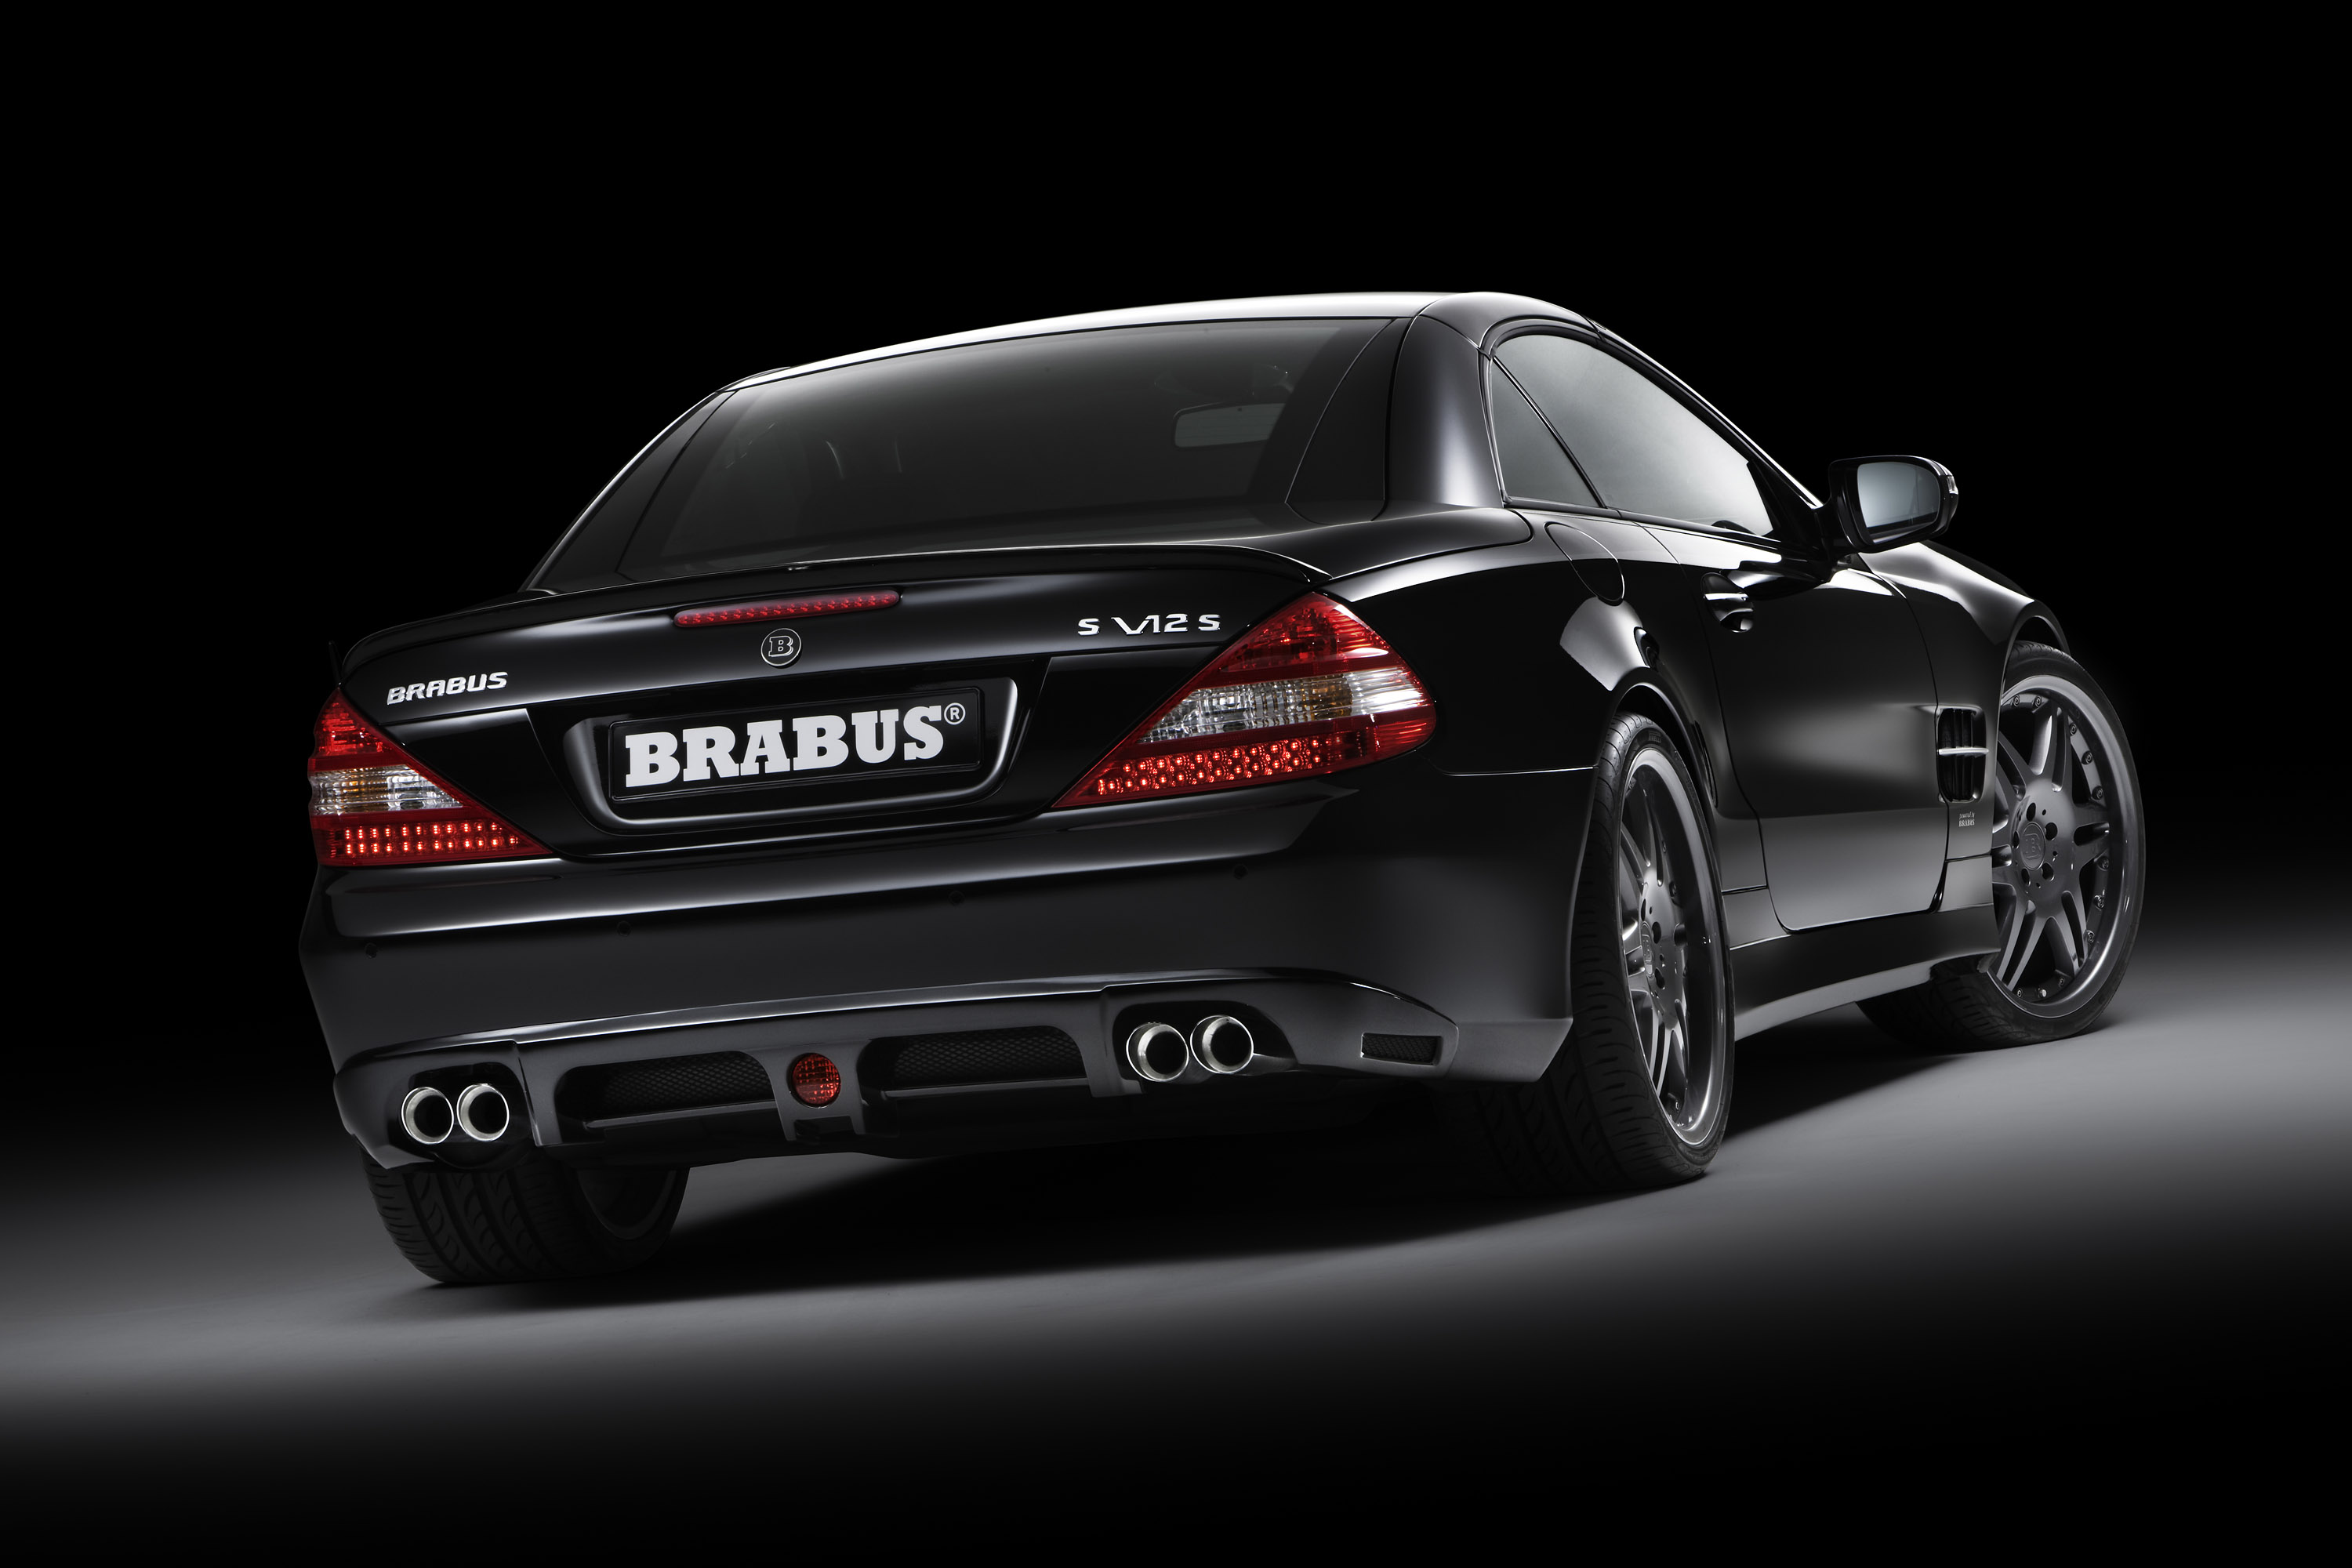 2019 Brabus Rocket Police Car photo - 4